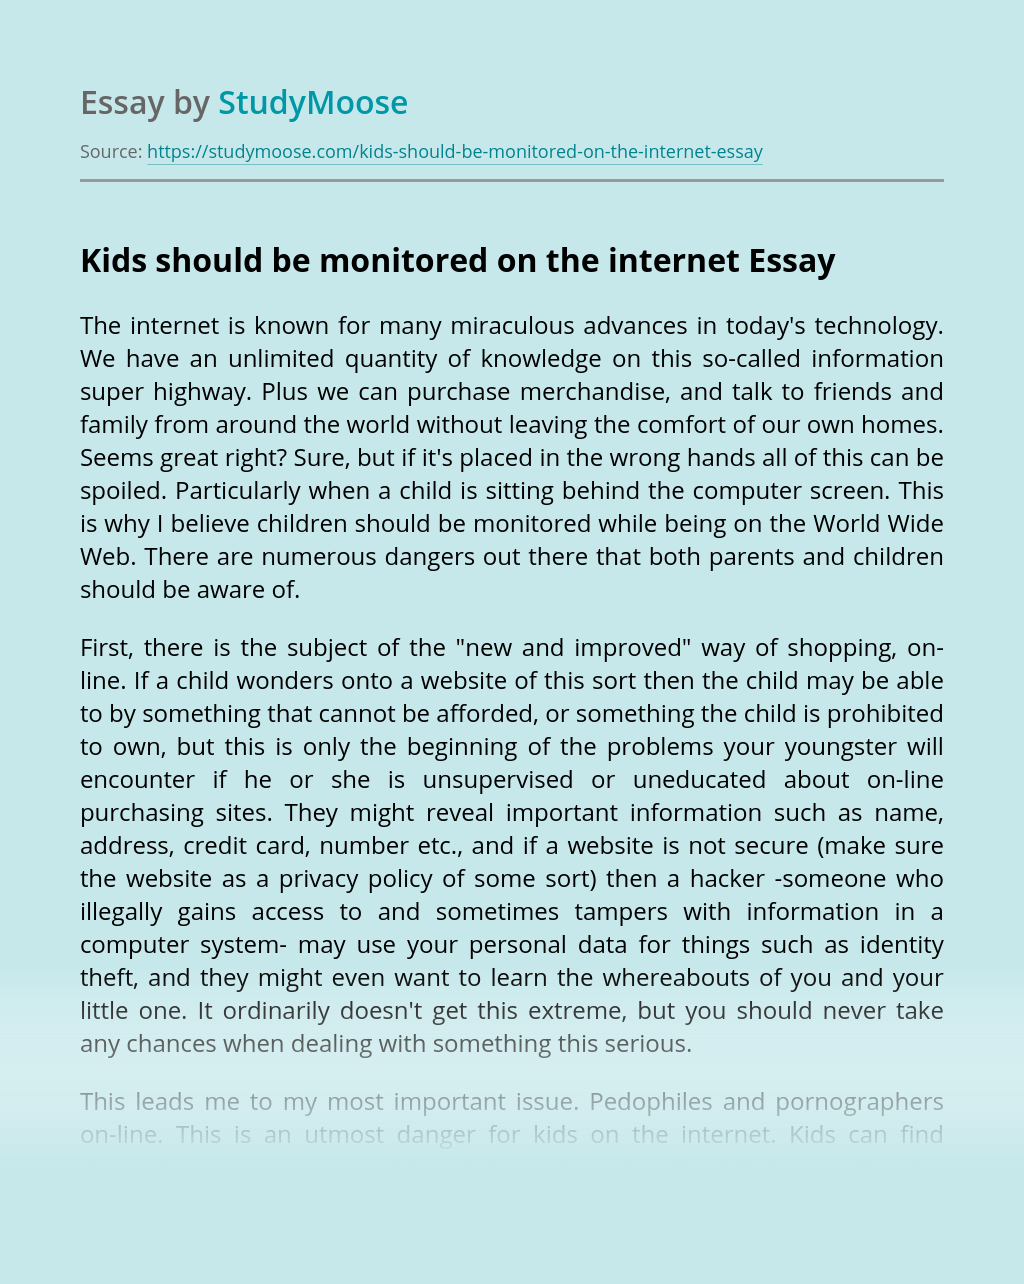 Kids should be monitored on the internet